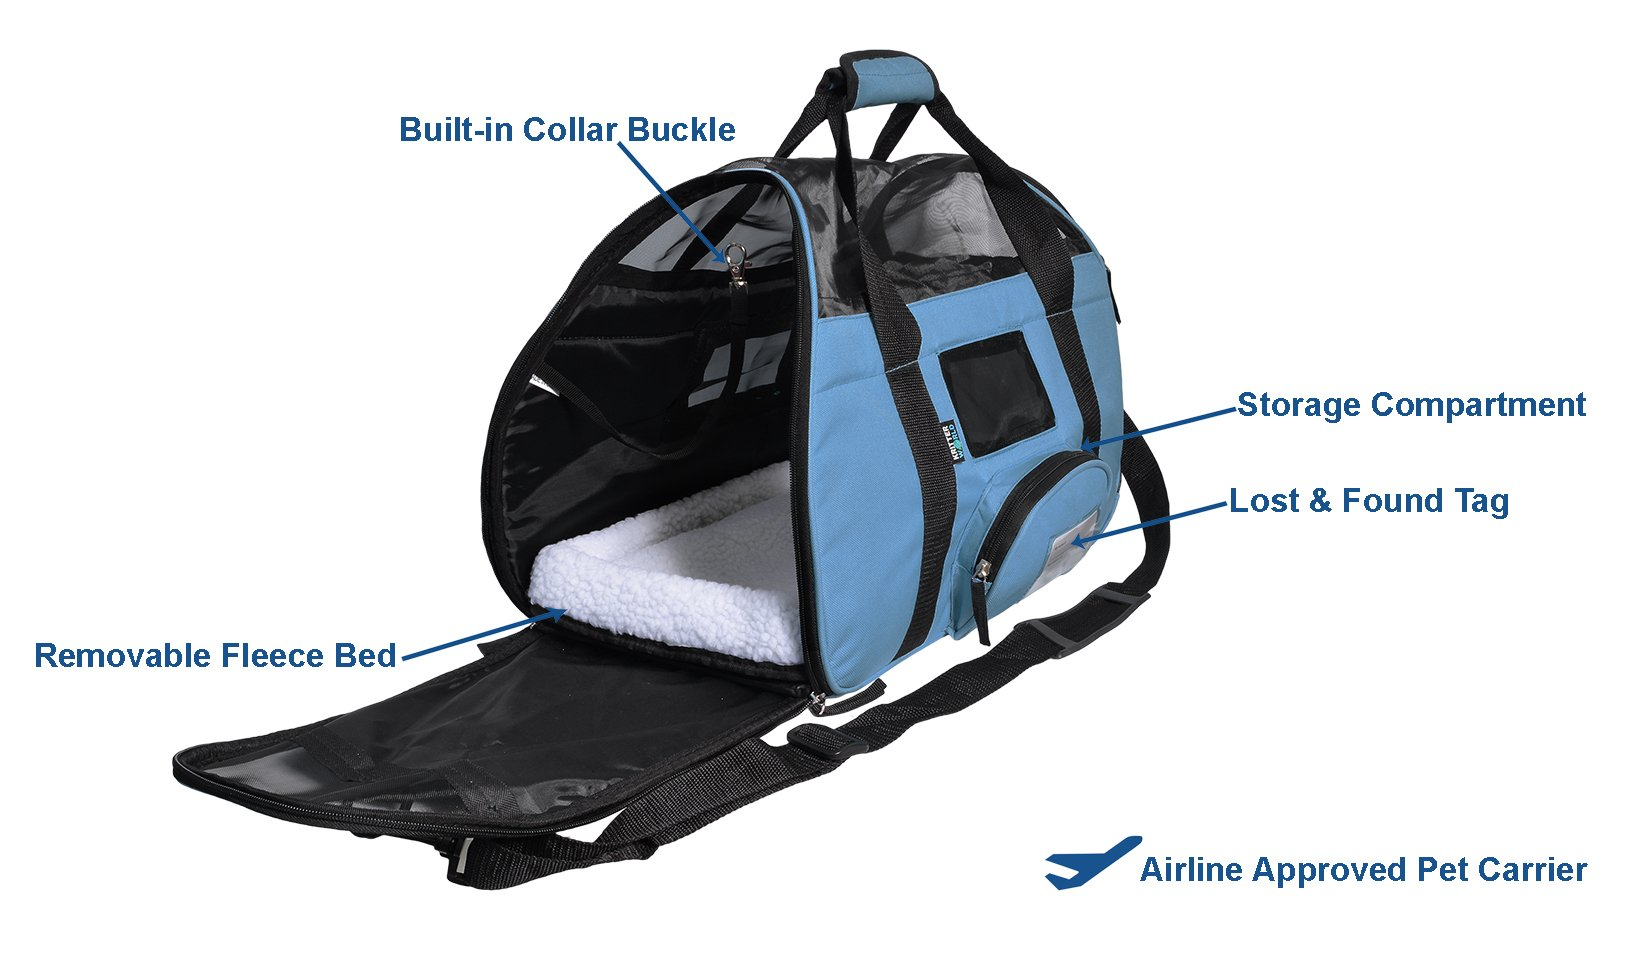 KritterWorld Soft Sided Pet Travel Carrier for Small Dogs and Cats Puppy Small Animals Airline Approved | Removable Sherpa Lining Bed, Built-in Collar Buckle, Lost & Found Tag Included by Black by KritterWorld (Image #3)